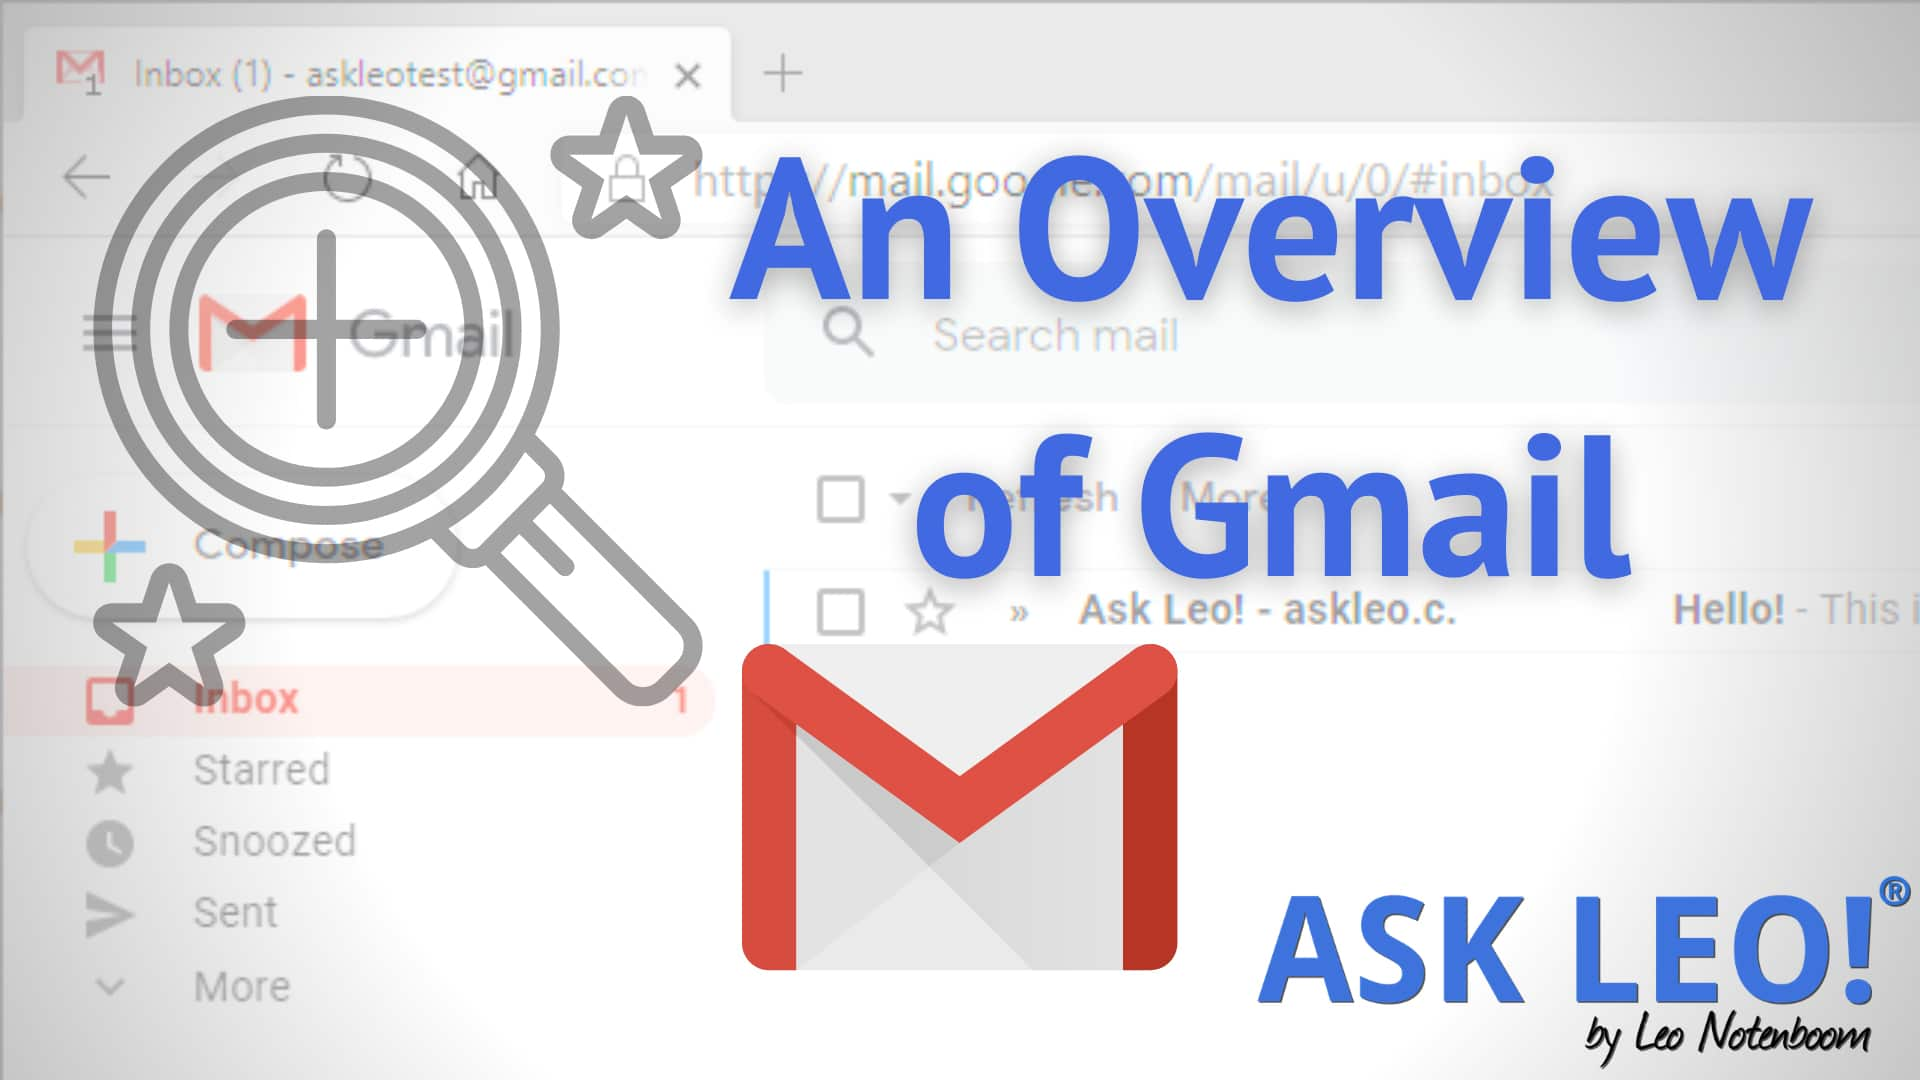 An Overview of Gmail - Ask Leo! Live